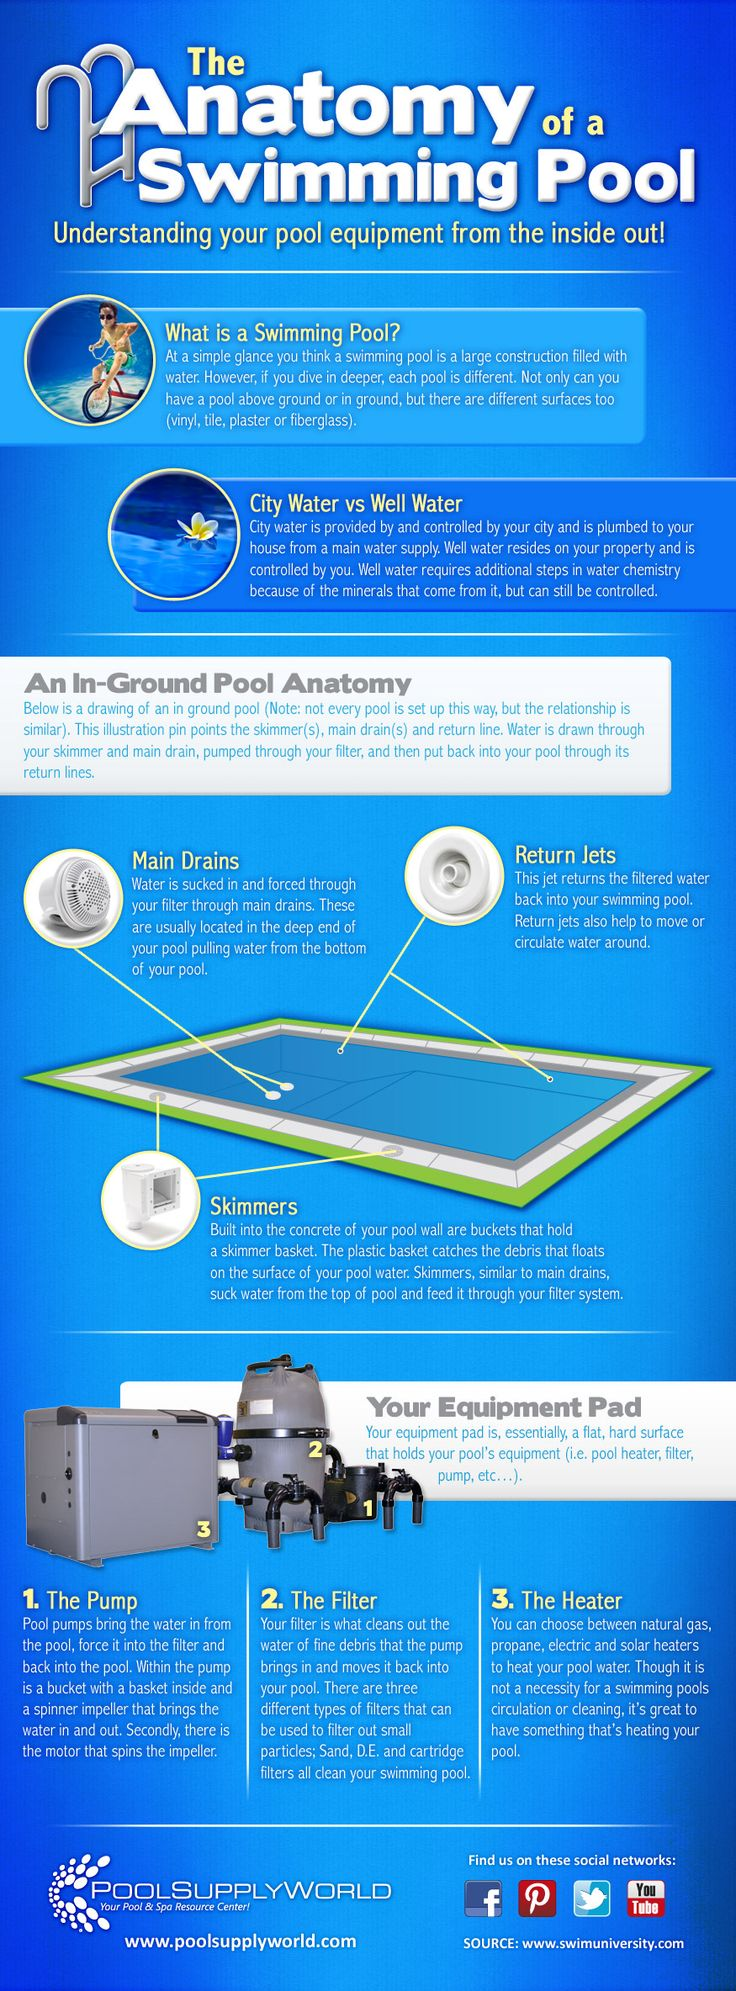 The Anatomy Of A Swimming Pool [Infographic] | PoolSupplyWorld Blog